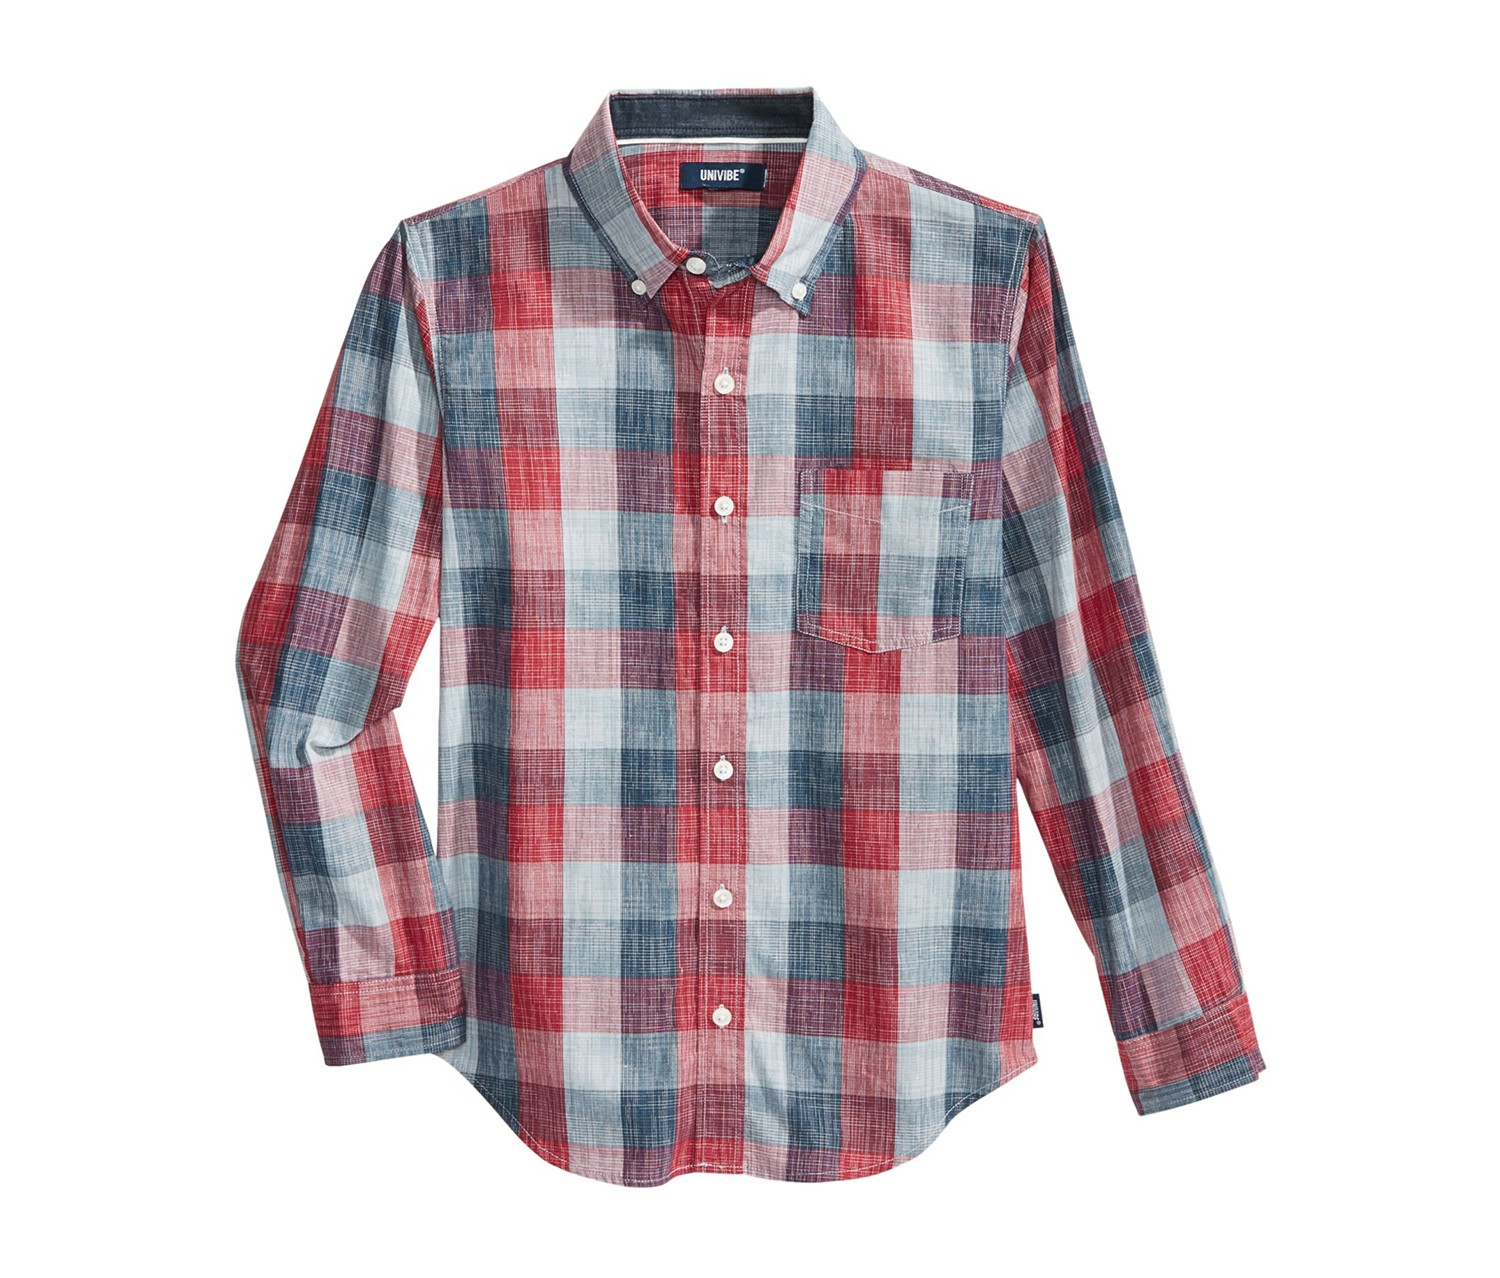 Boy's Tremor Plaid Cotton Shirt, Biking Red